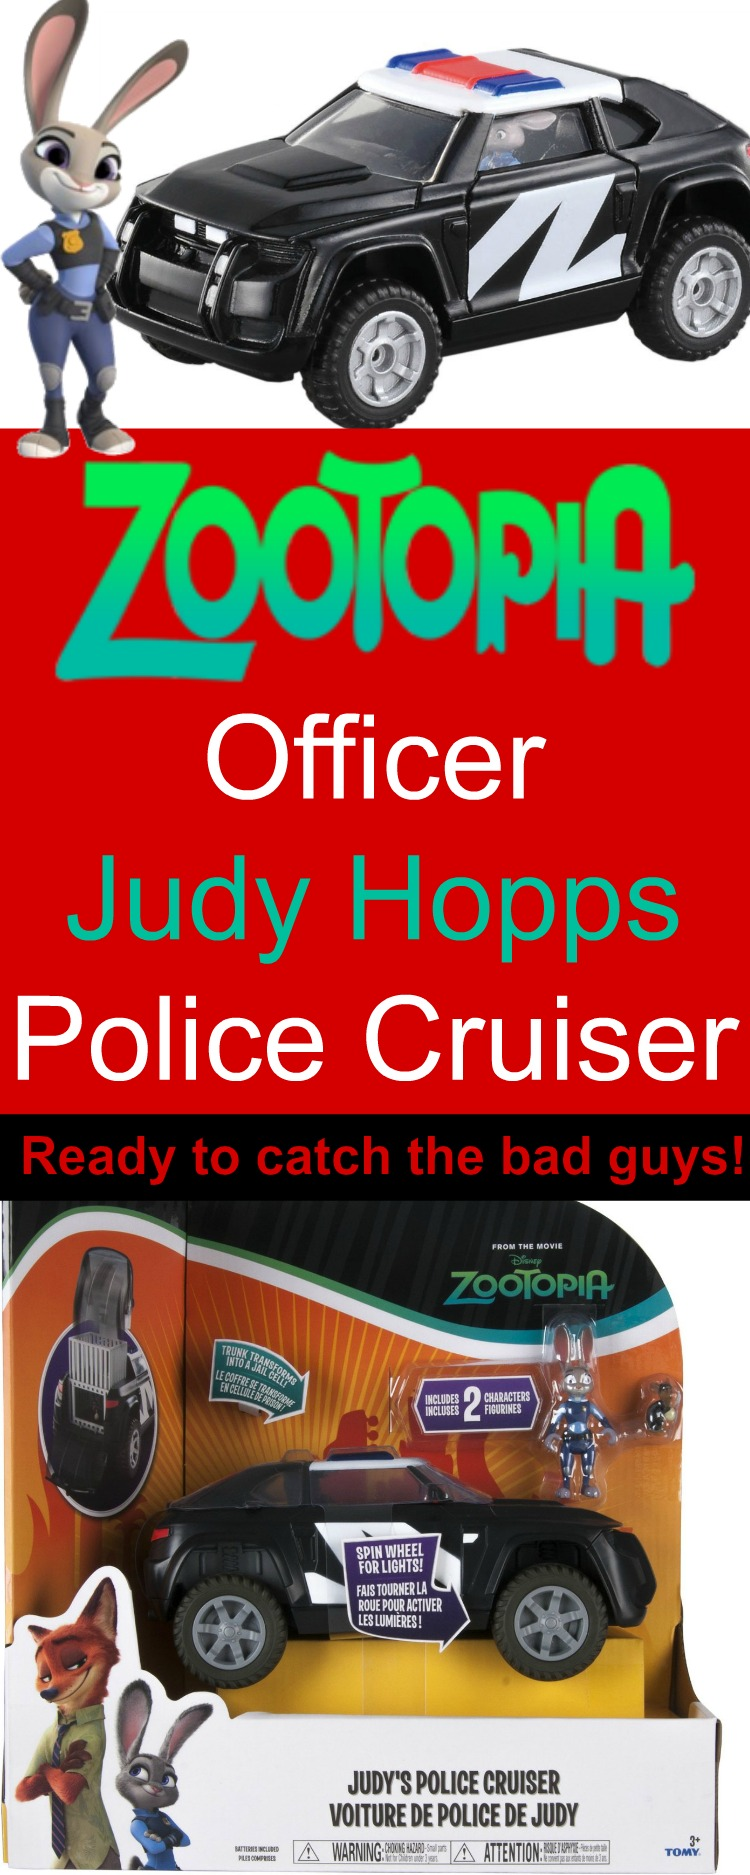 Zootopia Police Cruiser! Look out Zootopia...here comes Judy!